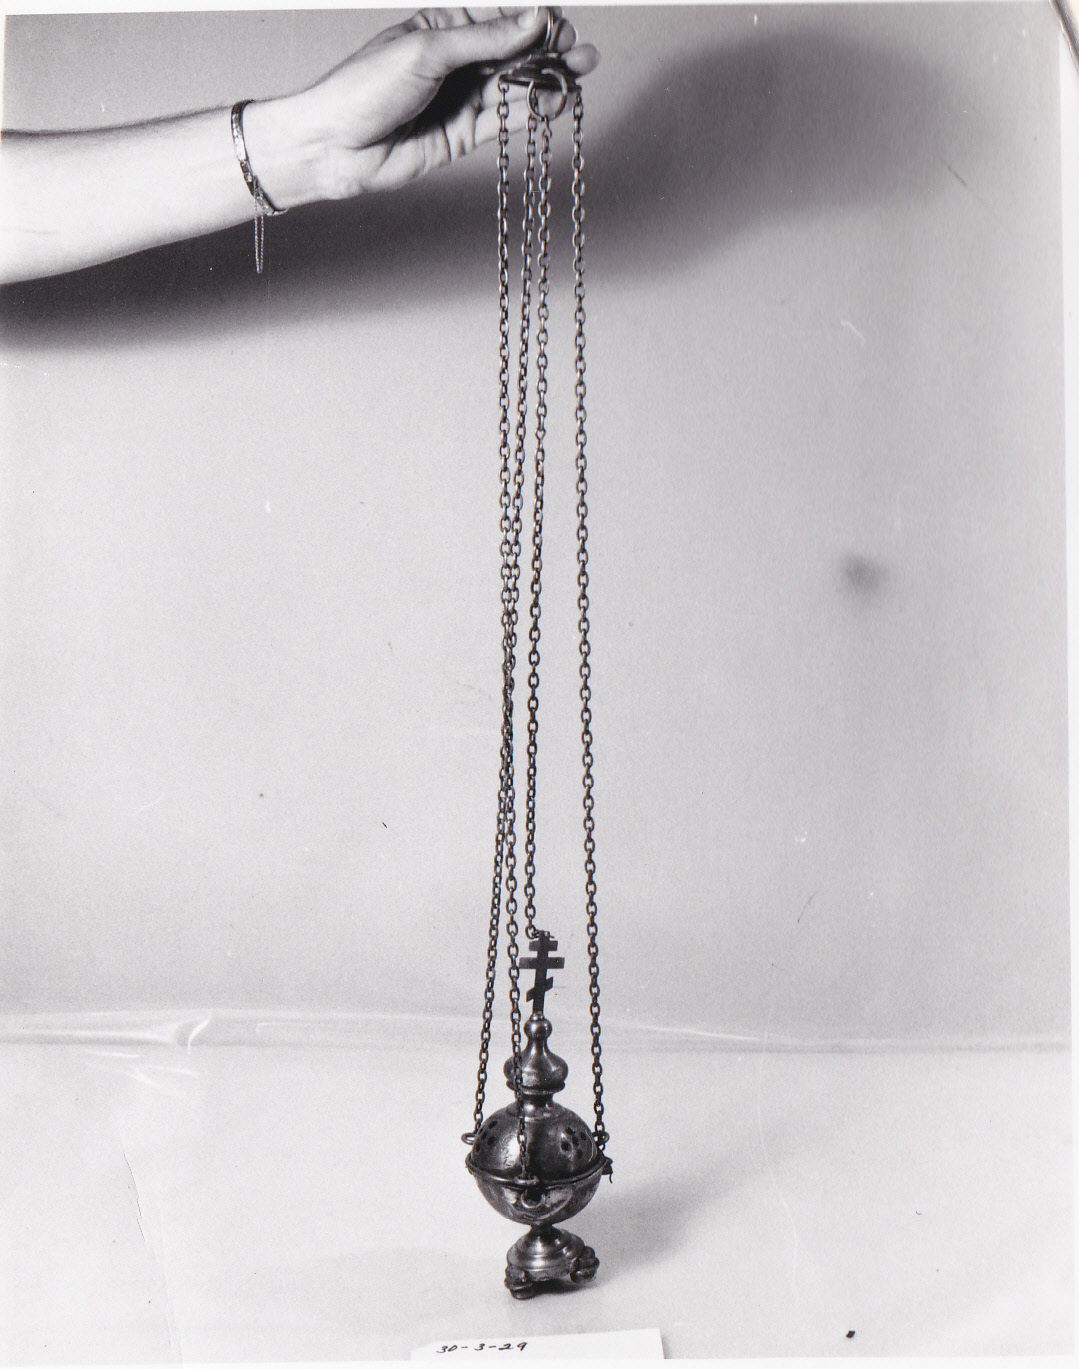 Object: Incense burner (Thurible) | UTSA Institute Of Texan Cultures